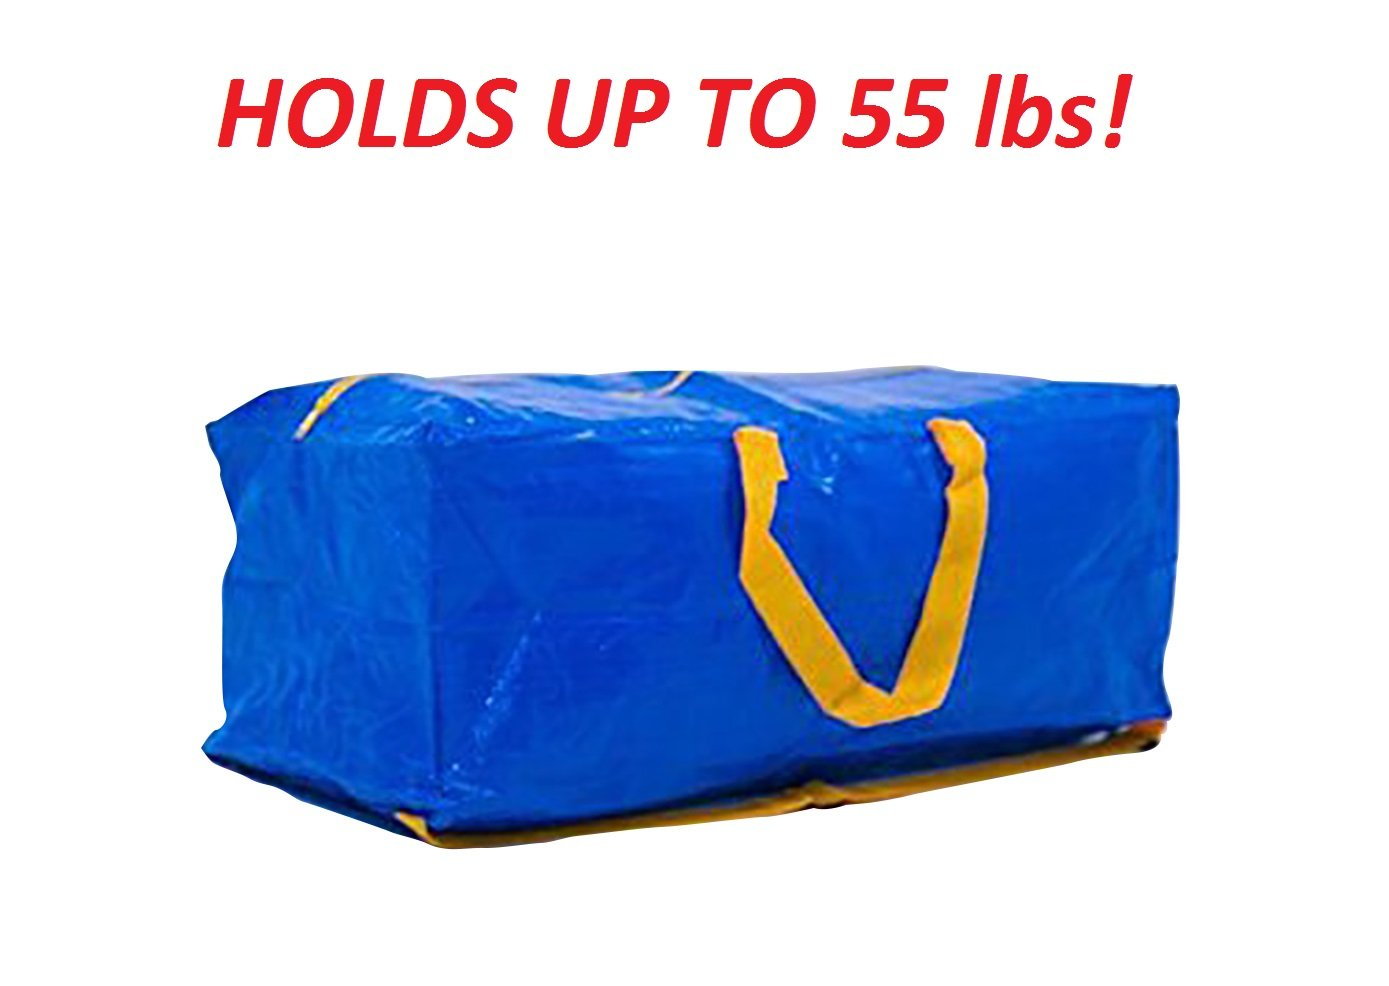 Klickpick Home Heavy Duty Reusable Extra Large Storage Bags -Pack of 4, Laundry Bag Shopping Moving Totes Bags Underbed Storage Bins Zipper -Backpack Handles,Compatible with IKEA FRAKTA CART- Blue by Klickpick Home (Image #3)